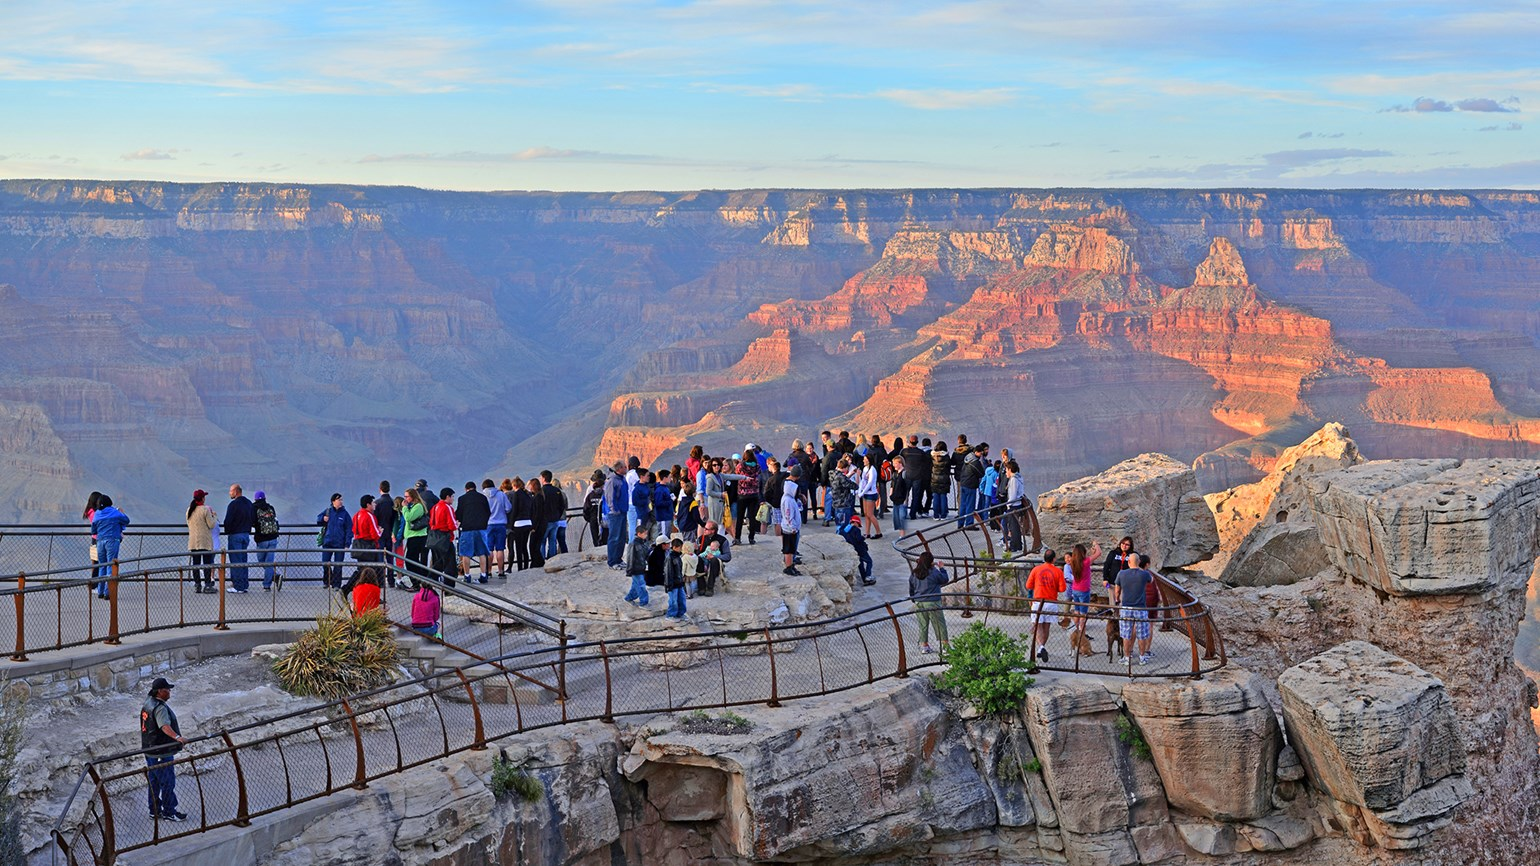 Xanterra, NPS reach settlement on Grand Canyon concessions